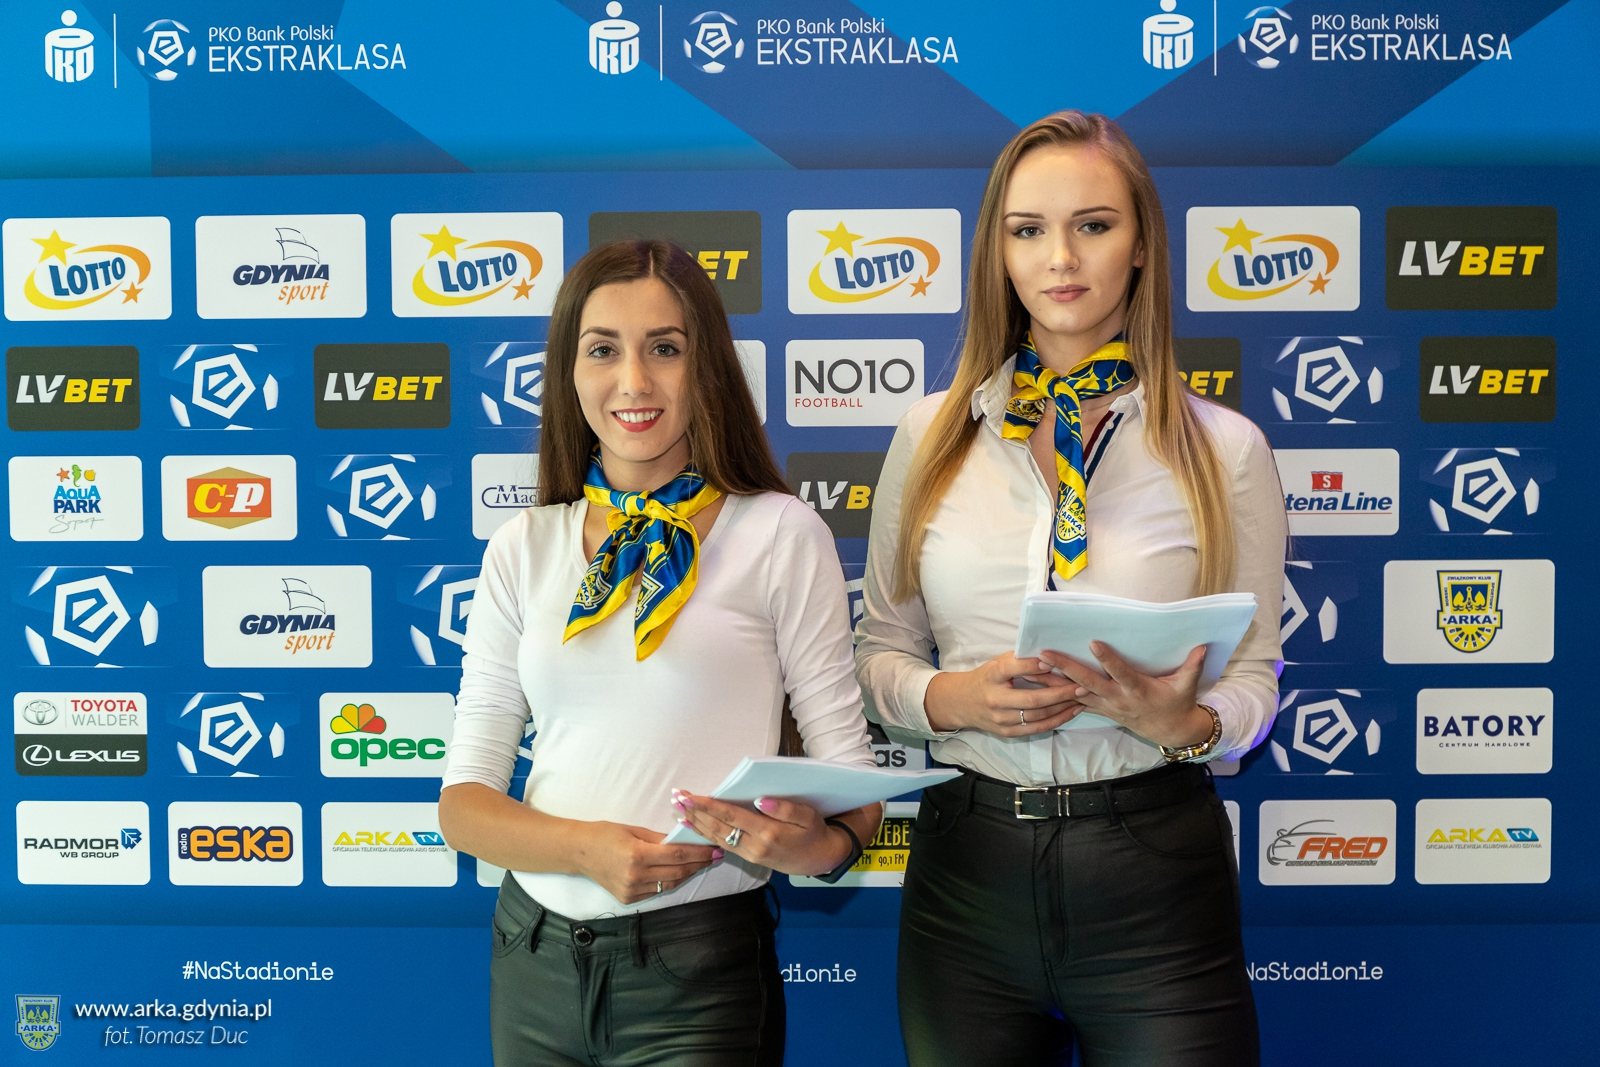 http://arka.gdynia.pl/images/galeria_zdjecie/big/01-190719-IMG_6730-a_d7811c72231214689266ae46a91347c0.jpg